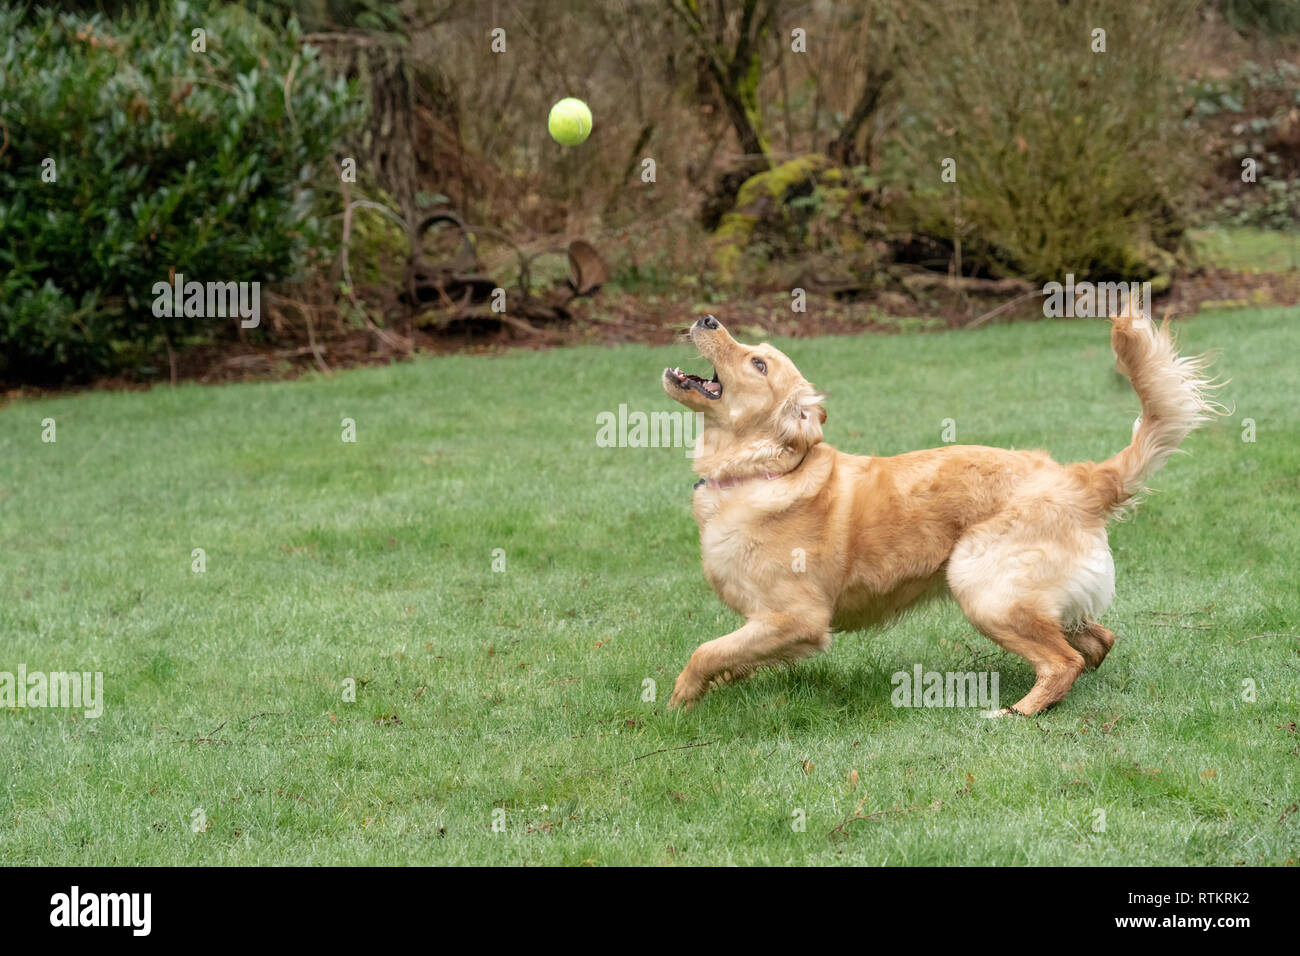 Issaquah, Washington, USA.  Nine month old Golden Retriever 'Aspen' trying to catch a ball that has been thrown.  (PR) - Stock Image